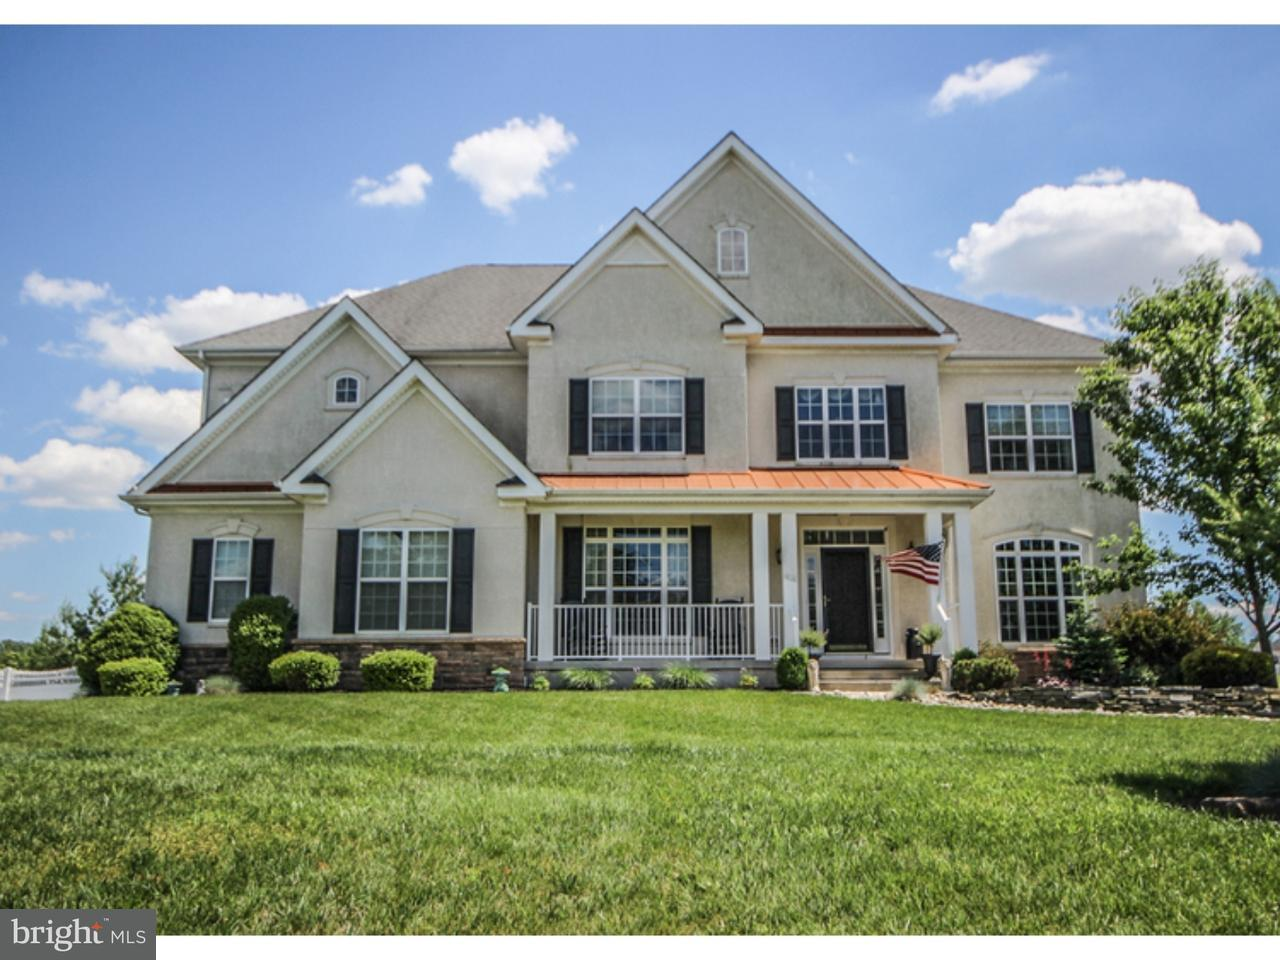 Single Family Home for Sale at 804 CASTLETON Drive Mickleton, New Jersey 08056 United States